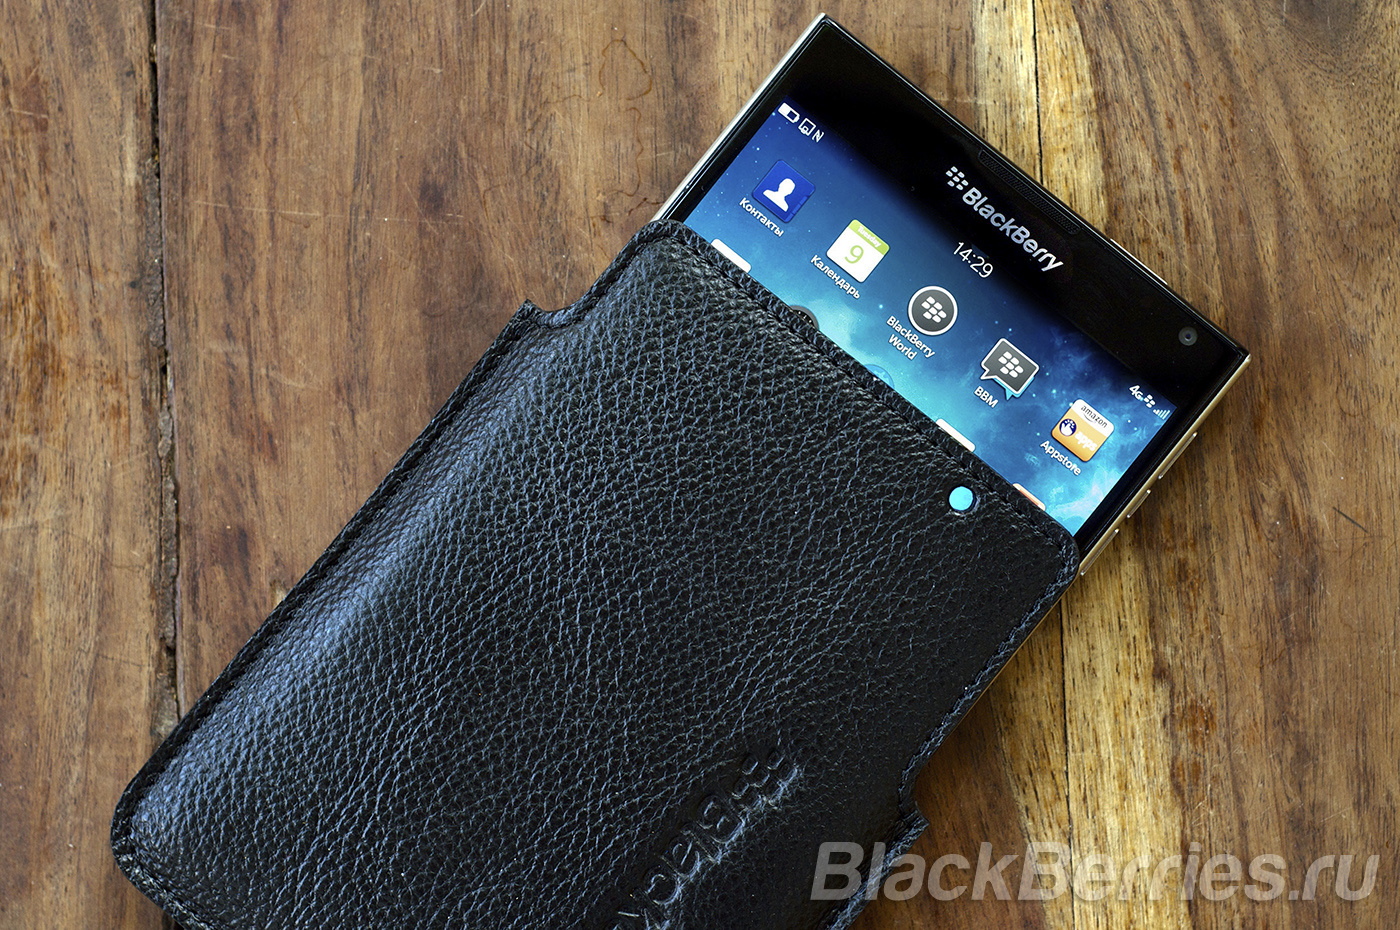 BlackBerry-Passport-Case-09